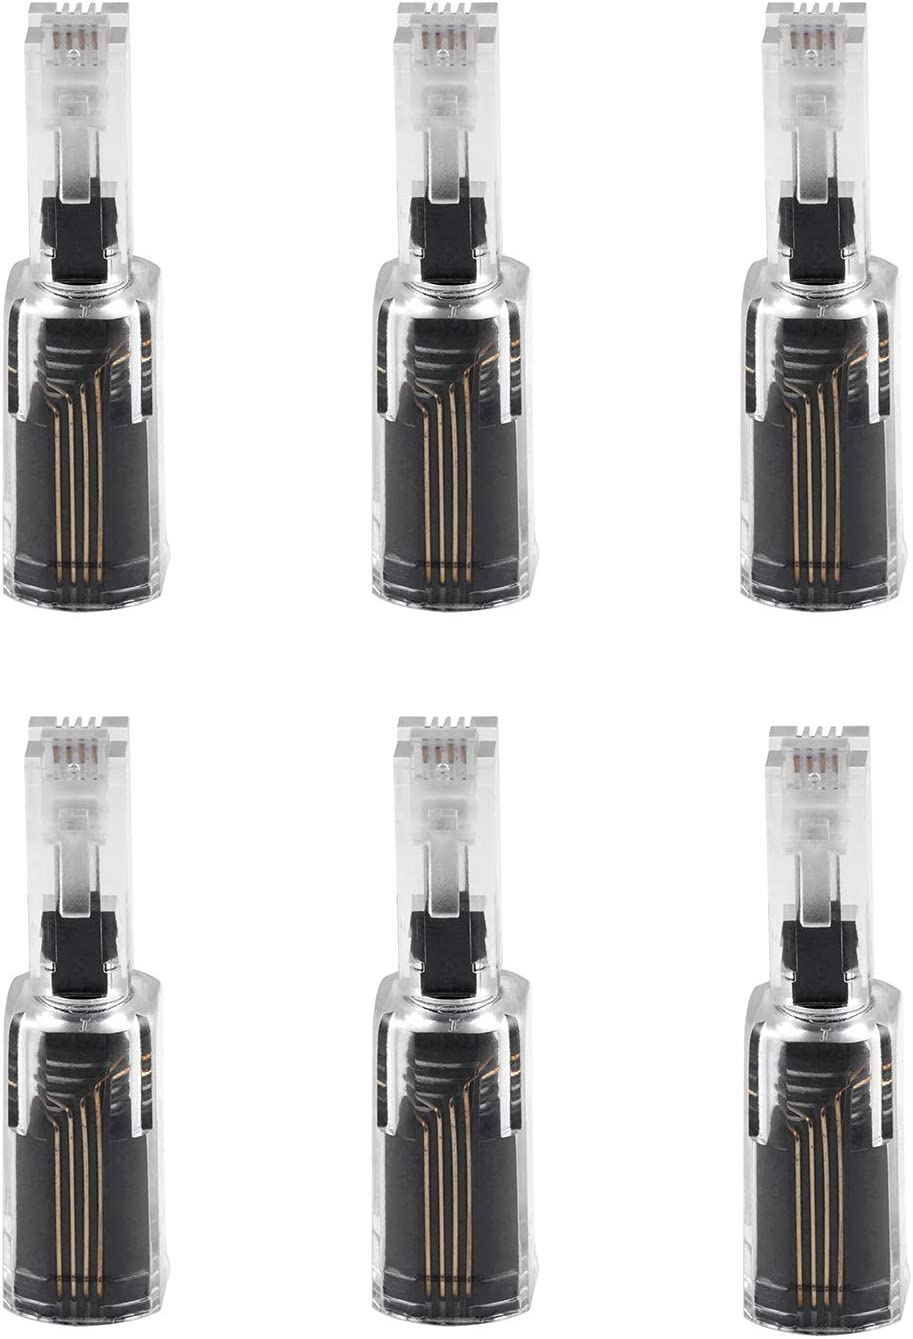 Power Gear Telephone Cord Detangler, 6 Pack, Tangle-Free 360 Degree Rotation, Plug into Landline Phone Handset, For Use in Home or Office, All Brands, Black, 46085